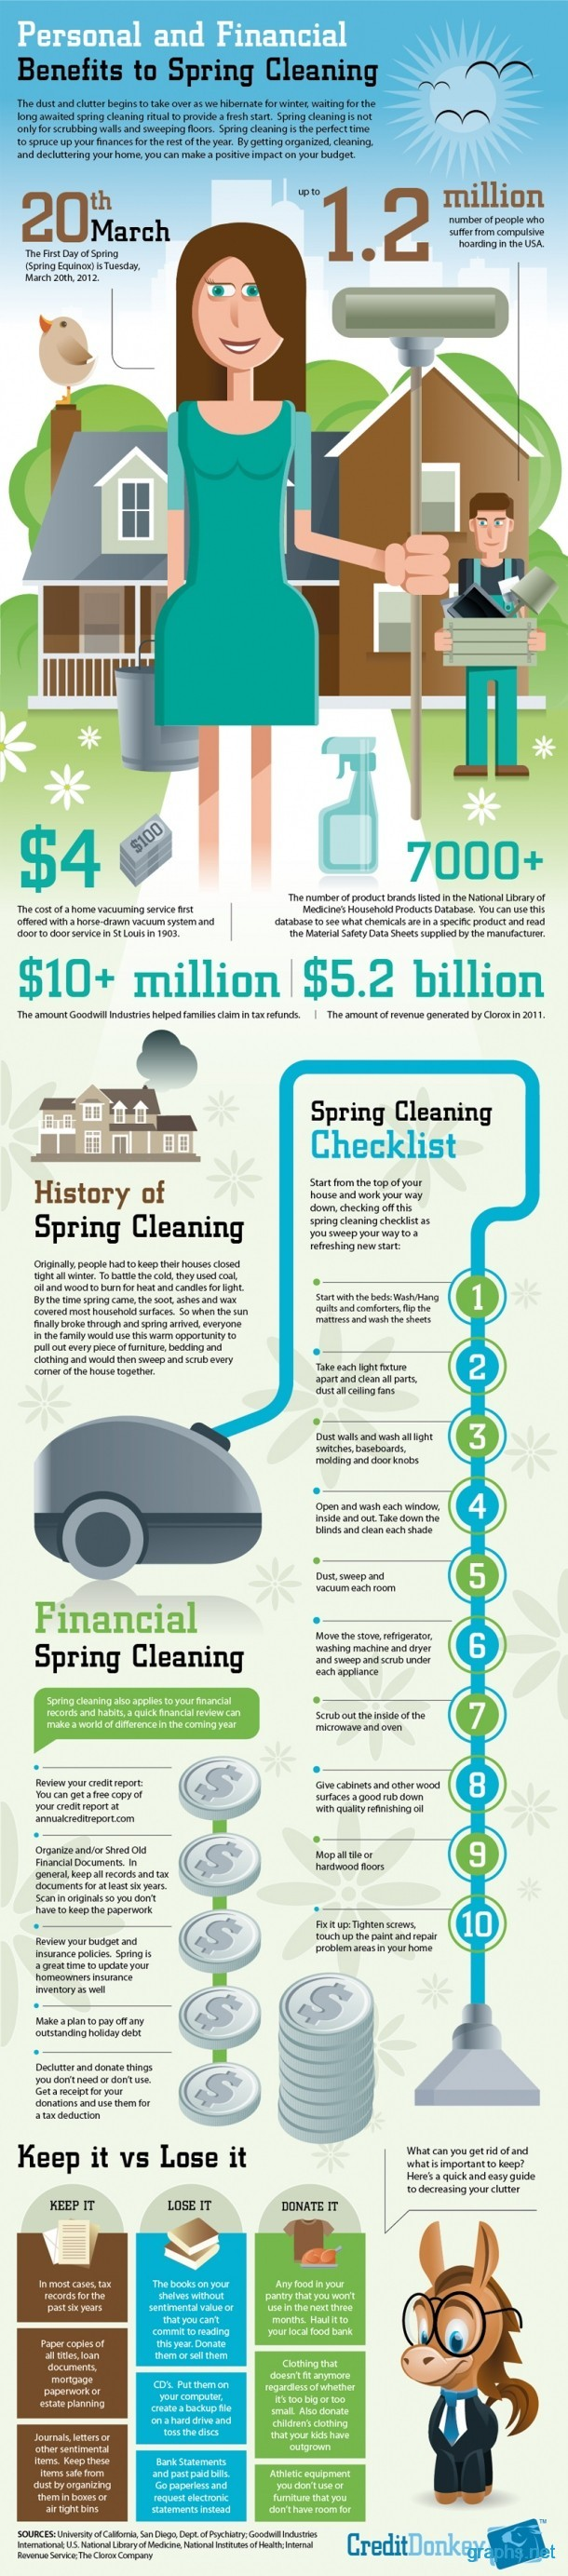 spring cleaning benefits